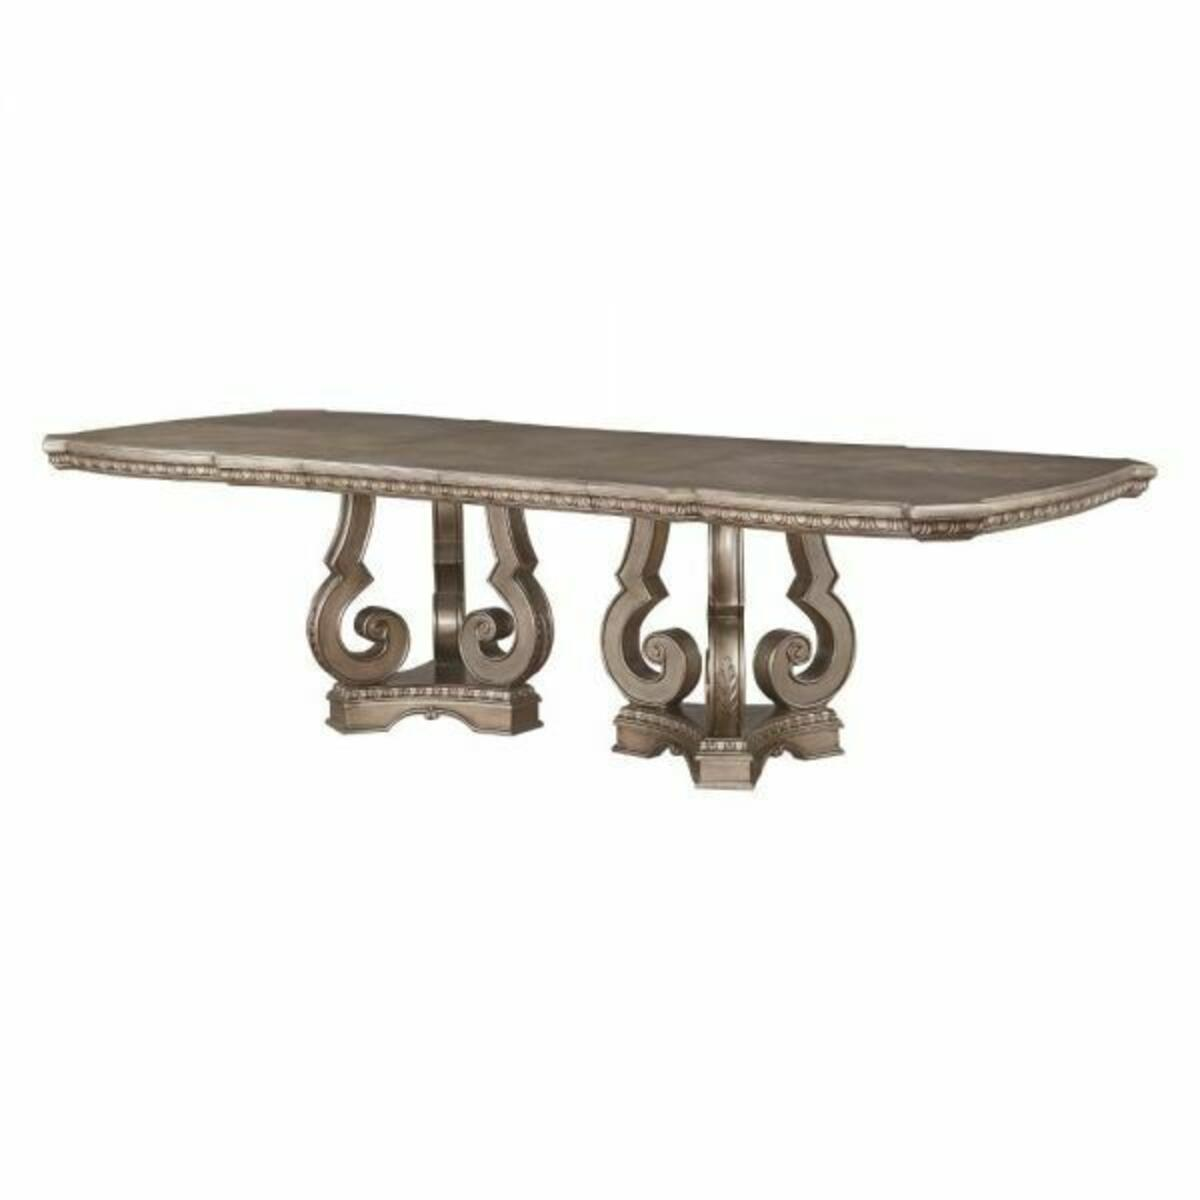 ACME Northville Dining Table w/Double Pedestal - 66920 - Antique Silver